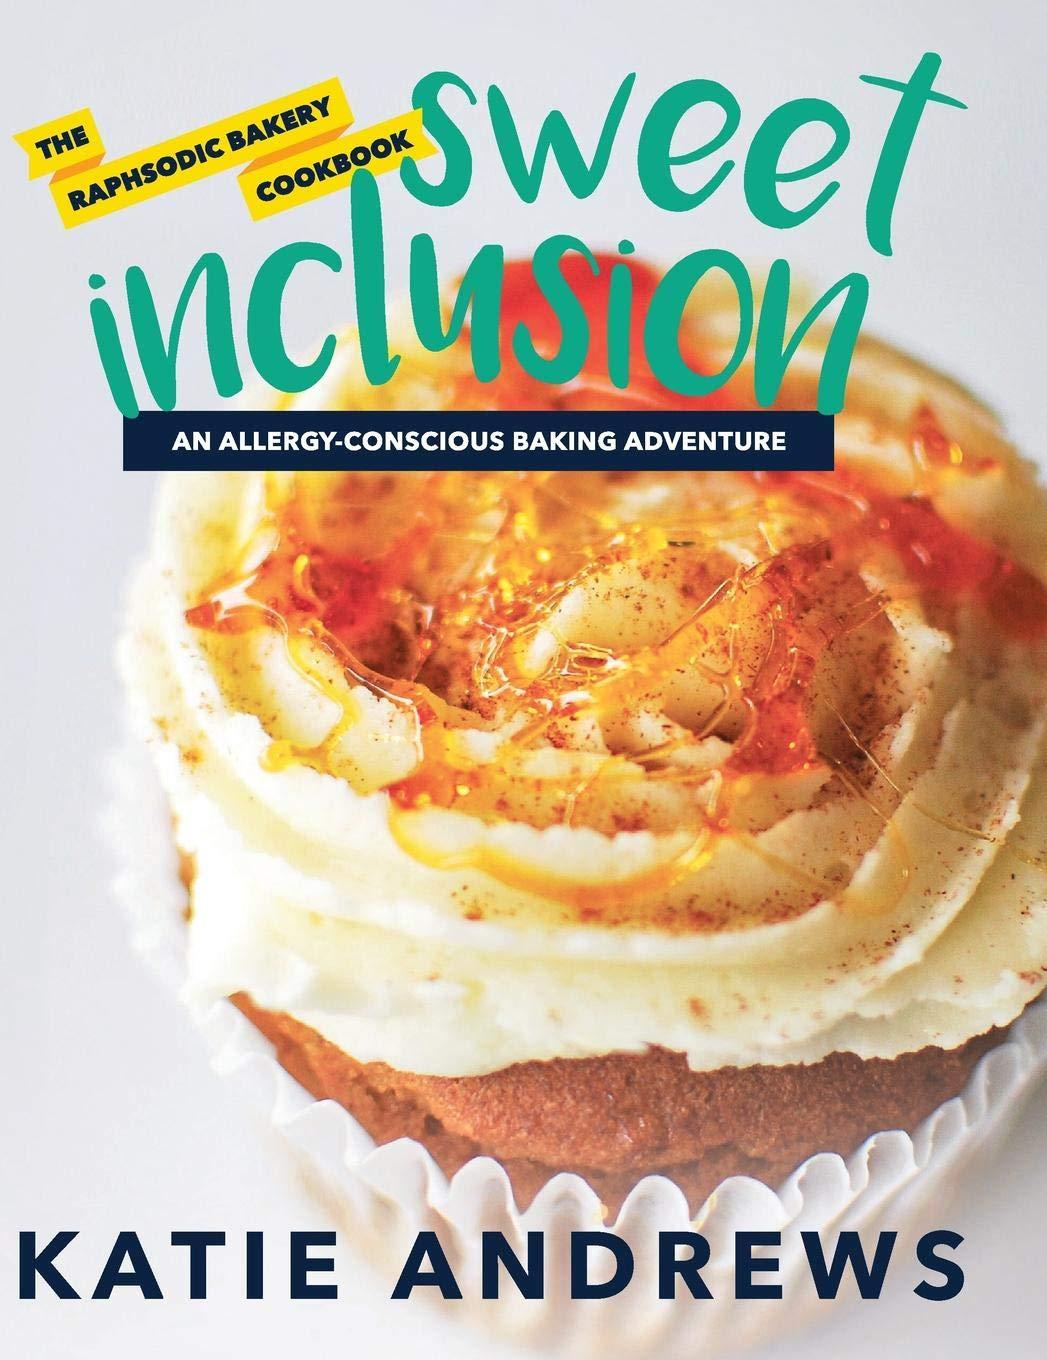 Sweet Inclusion: The Raphsodic Bakery Cookbook by Cocoon Publishing